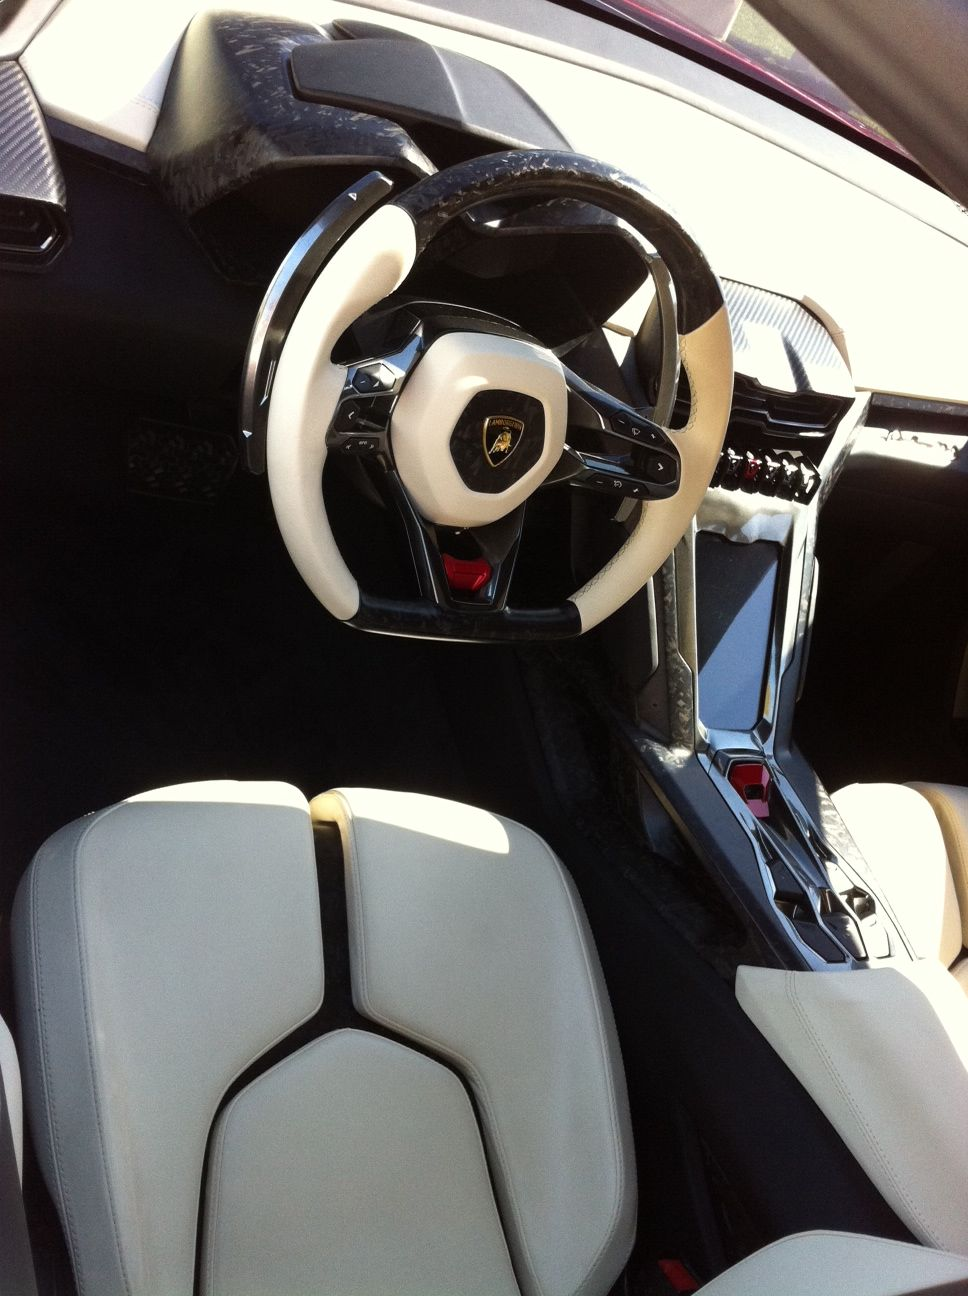 find this pin and more on lamborghini urus by lgmsports